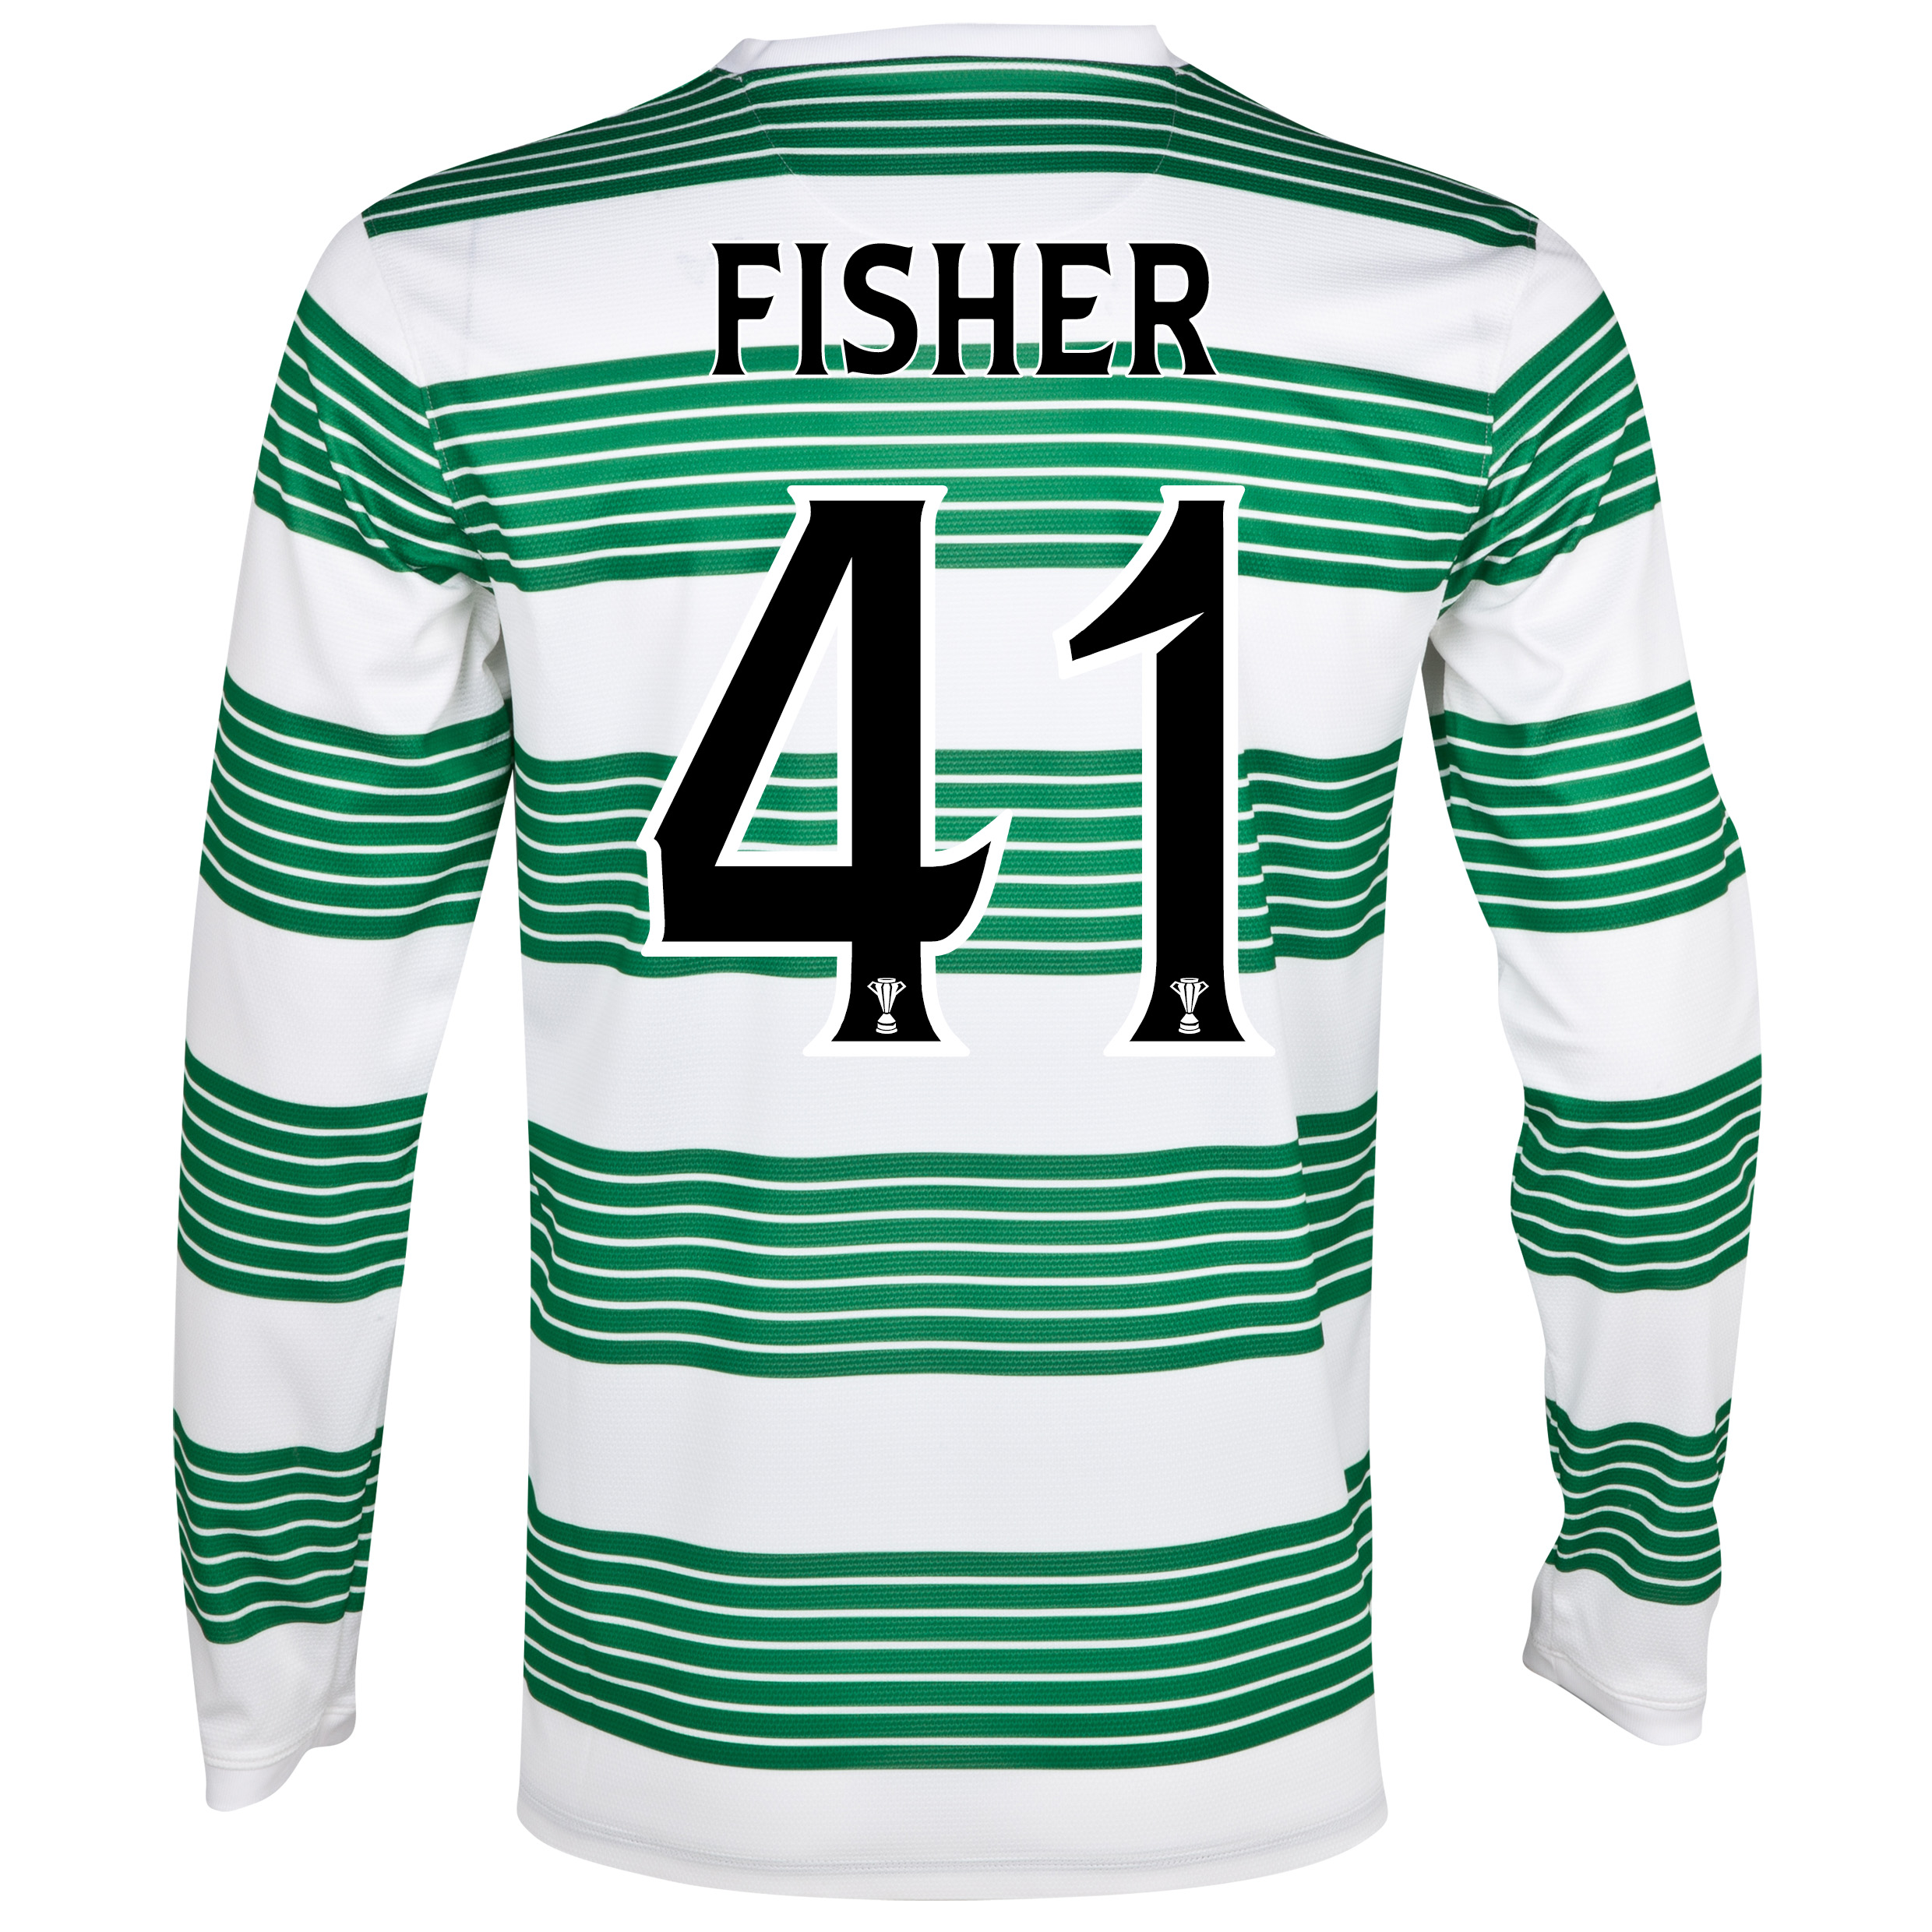 Celtic Home Shirt 2013/15 - L/S- Unsponsored with Fisher 41 printing